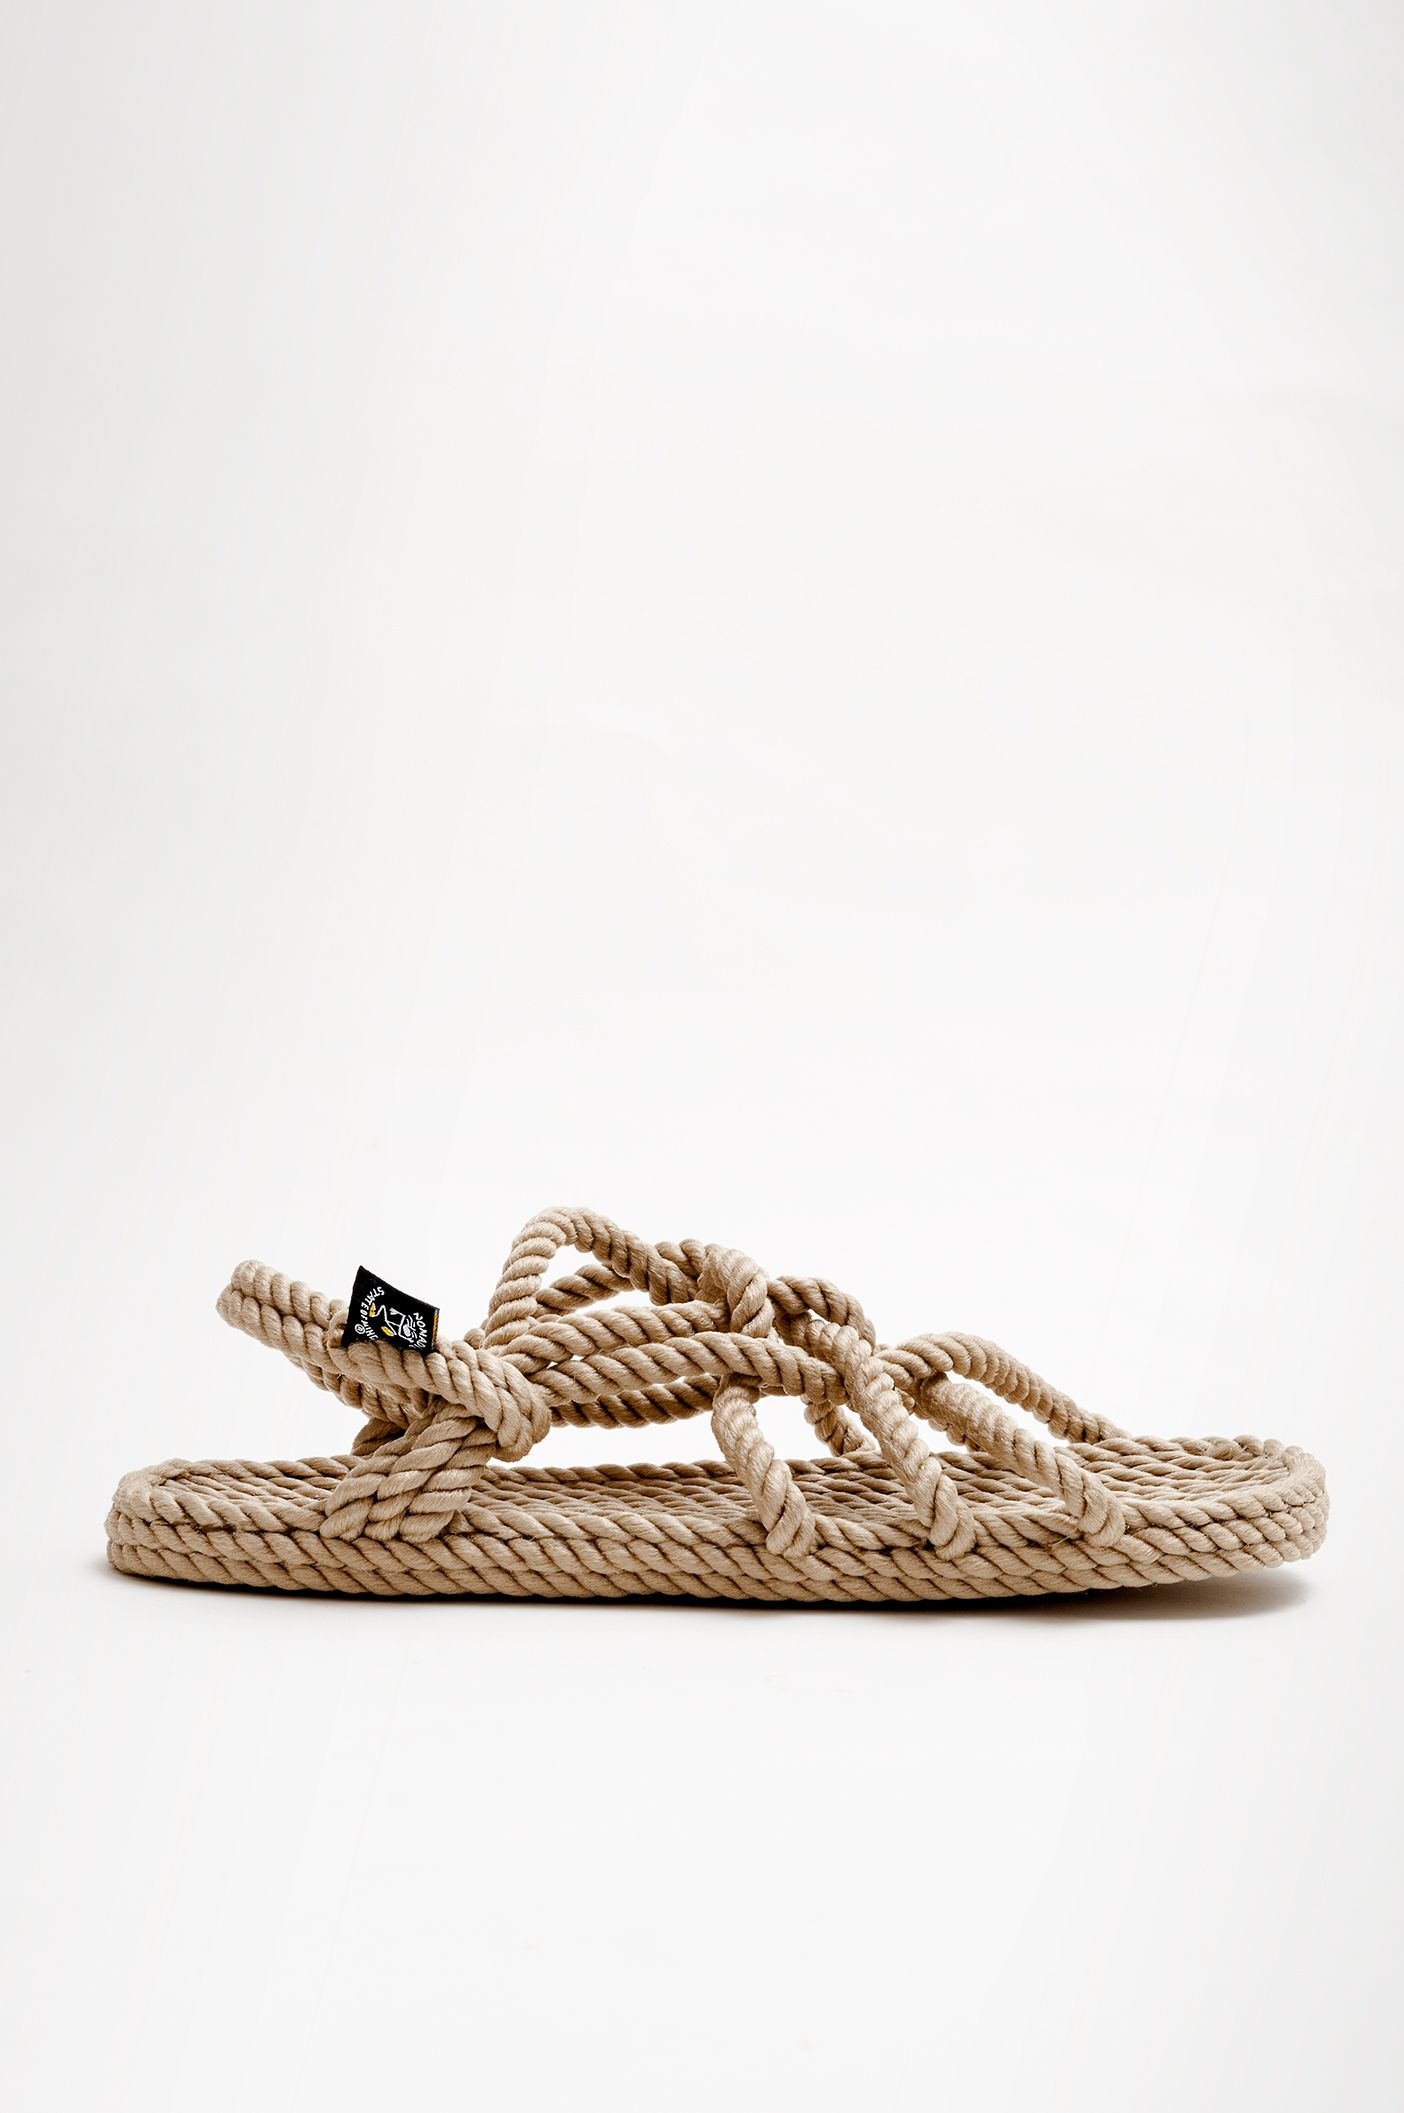 Rope Sandals Women Humanoid Shop Rope Sandals Types Of Sandals Womens Sandals